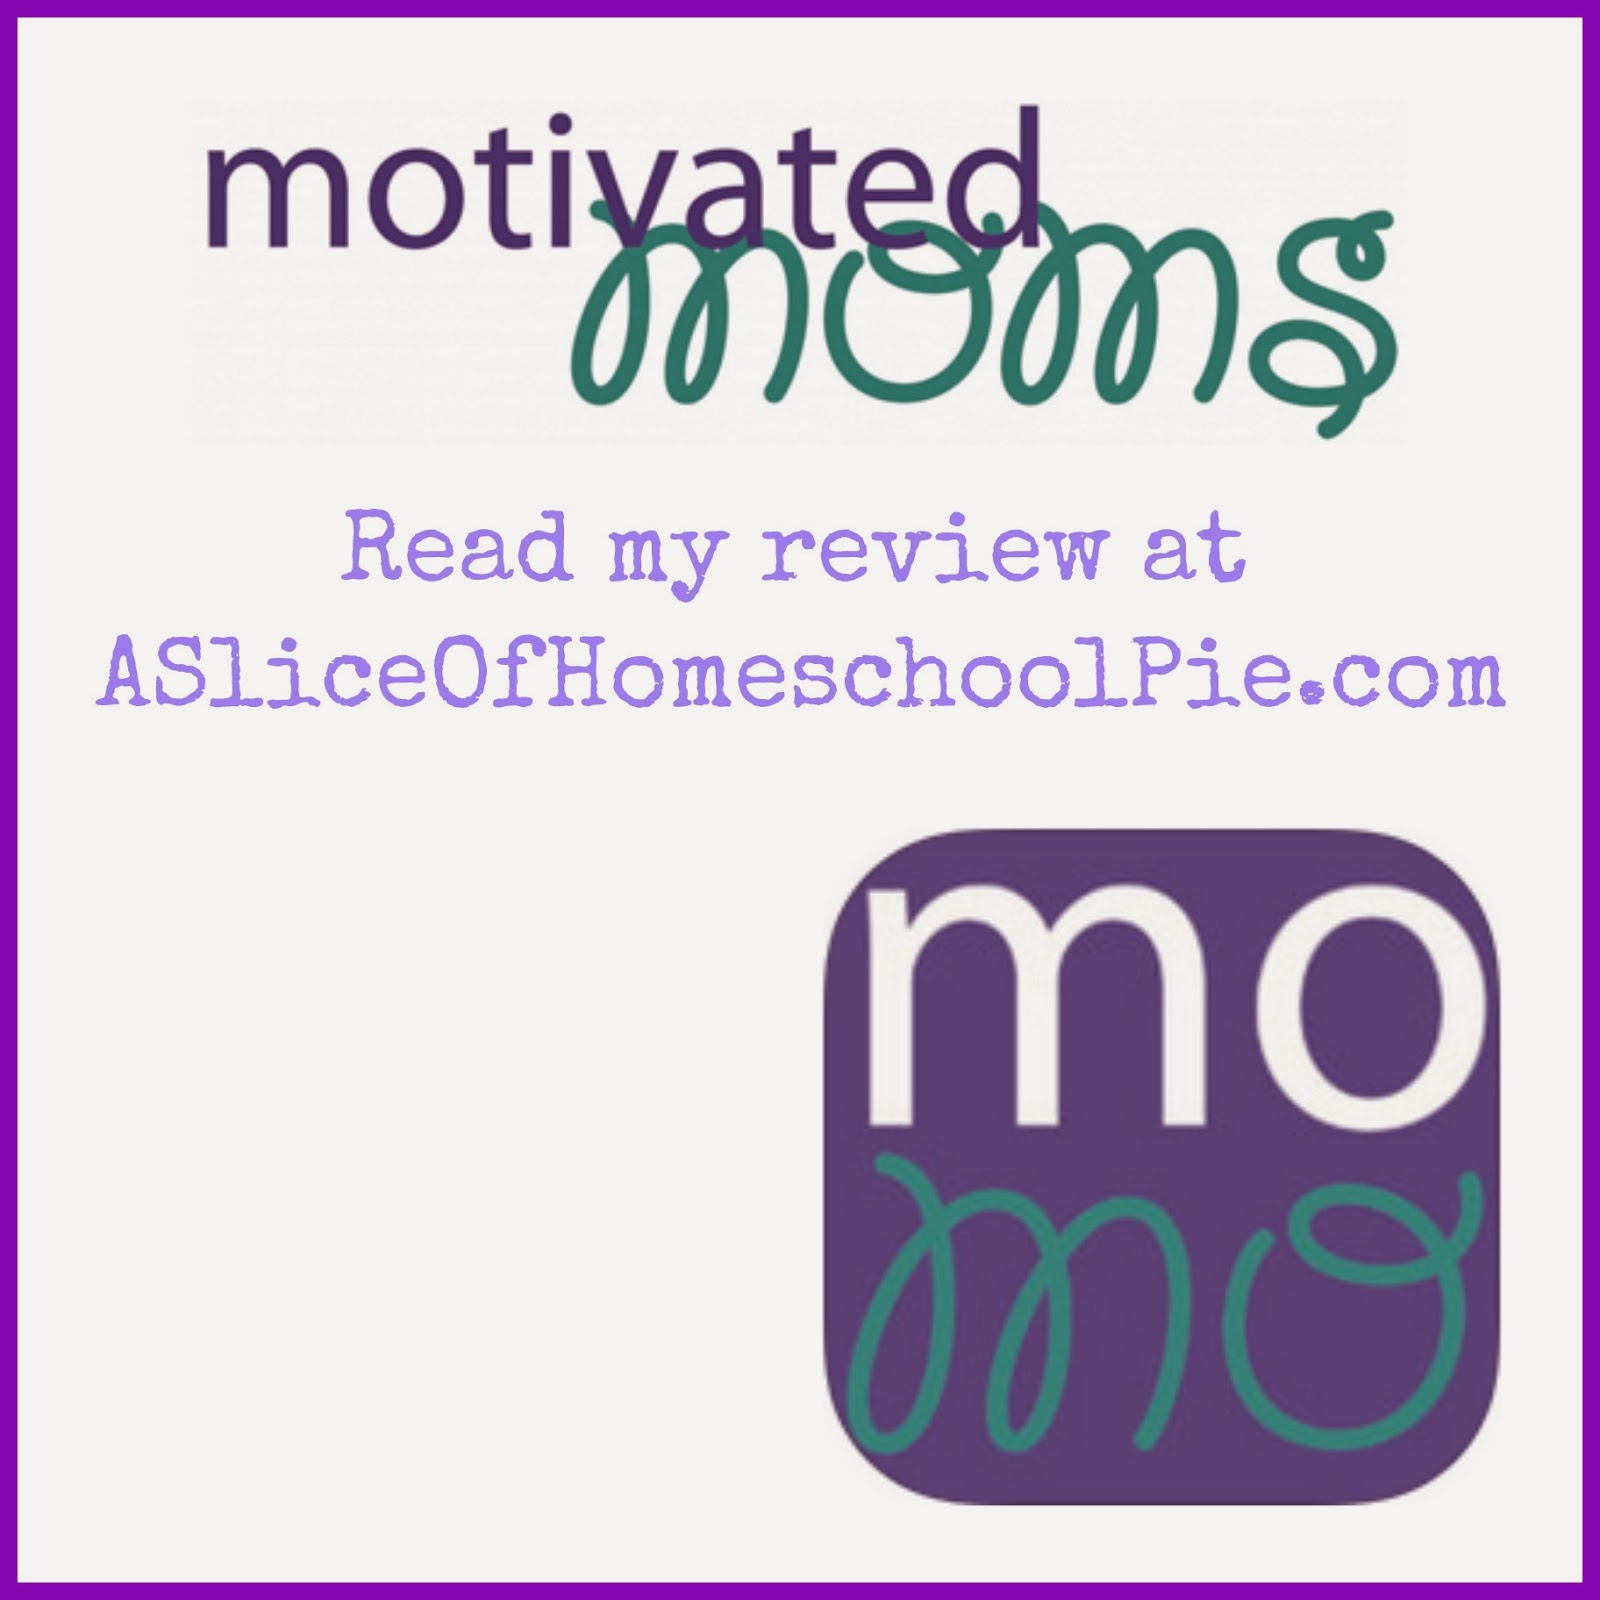 Motivated Moms Review by ASliceOfHomeschoolPie.com